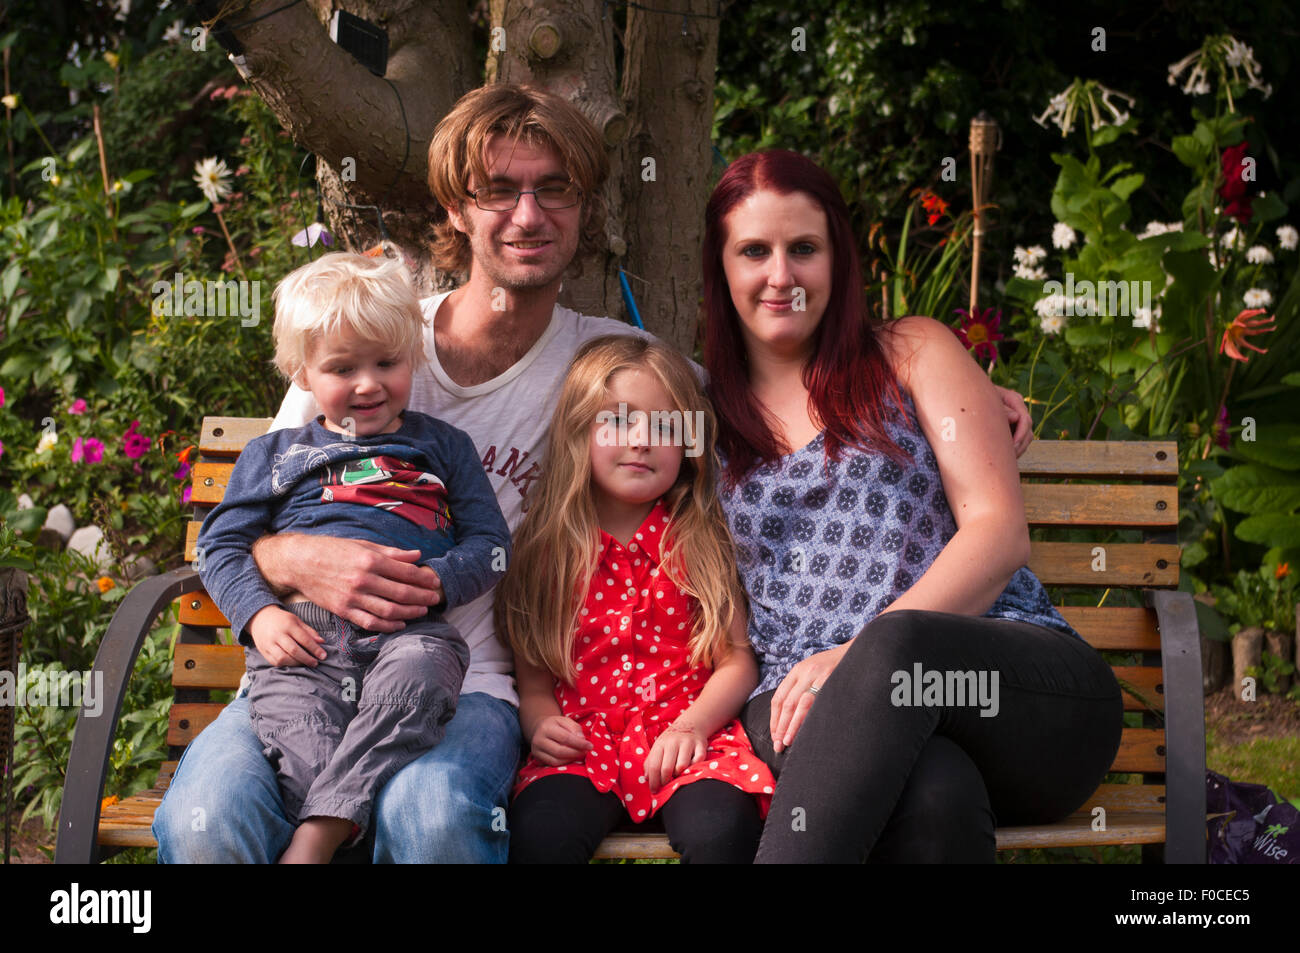 Family Portrait Of Mum Dad Son and Daughter - Stock Image